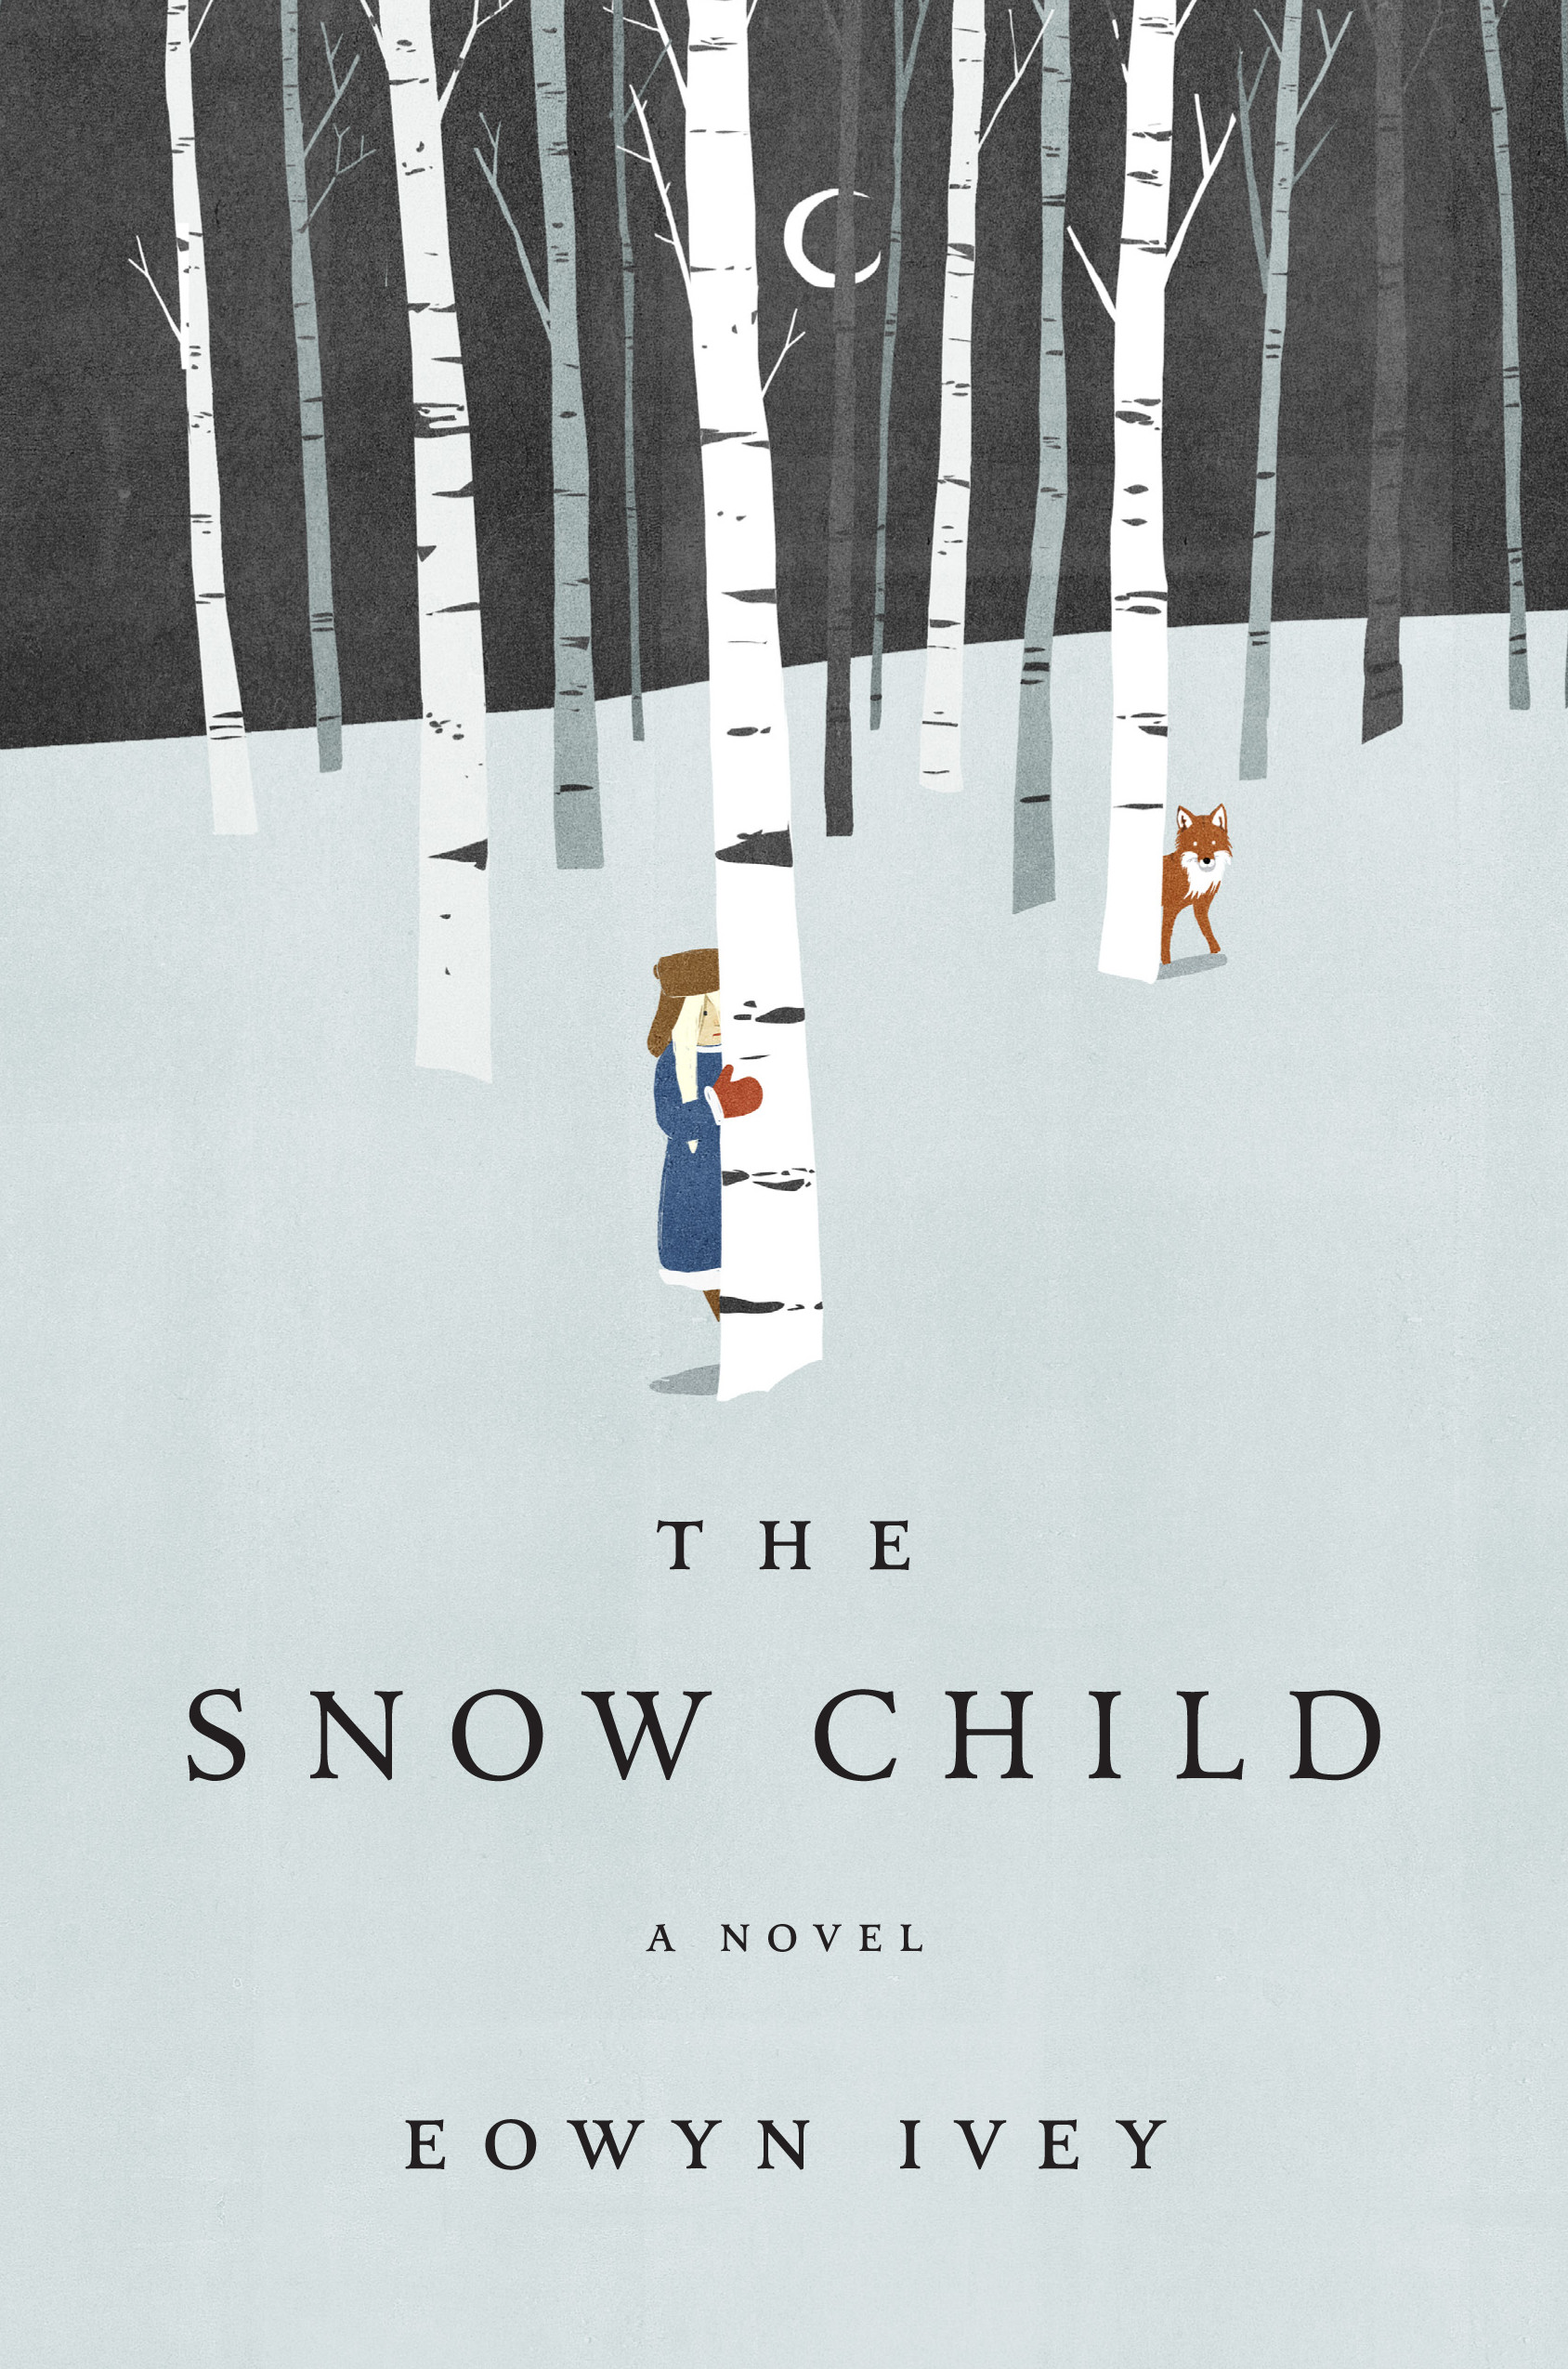 Image result for eowyn ivey the snow child book cover